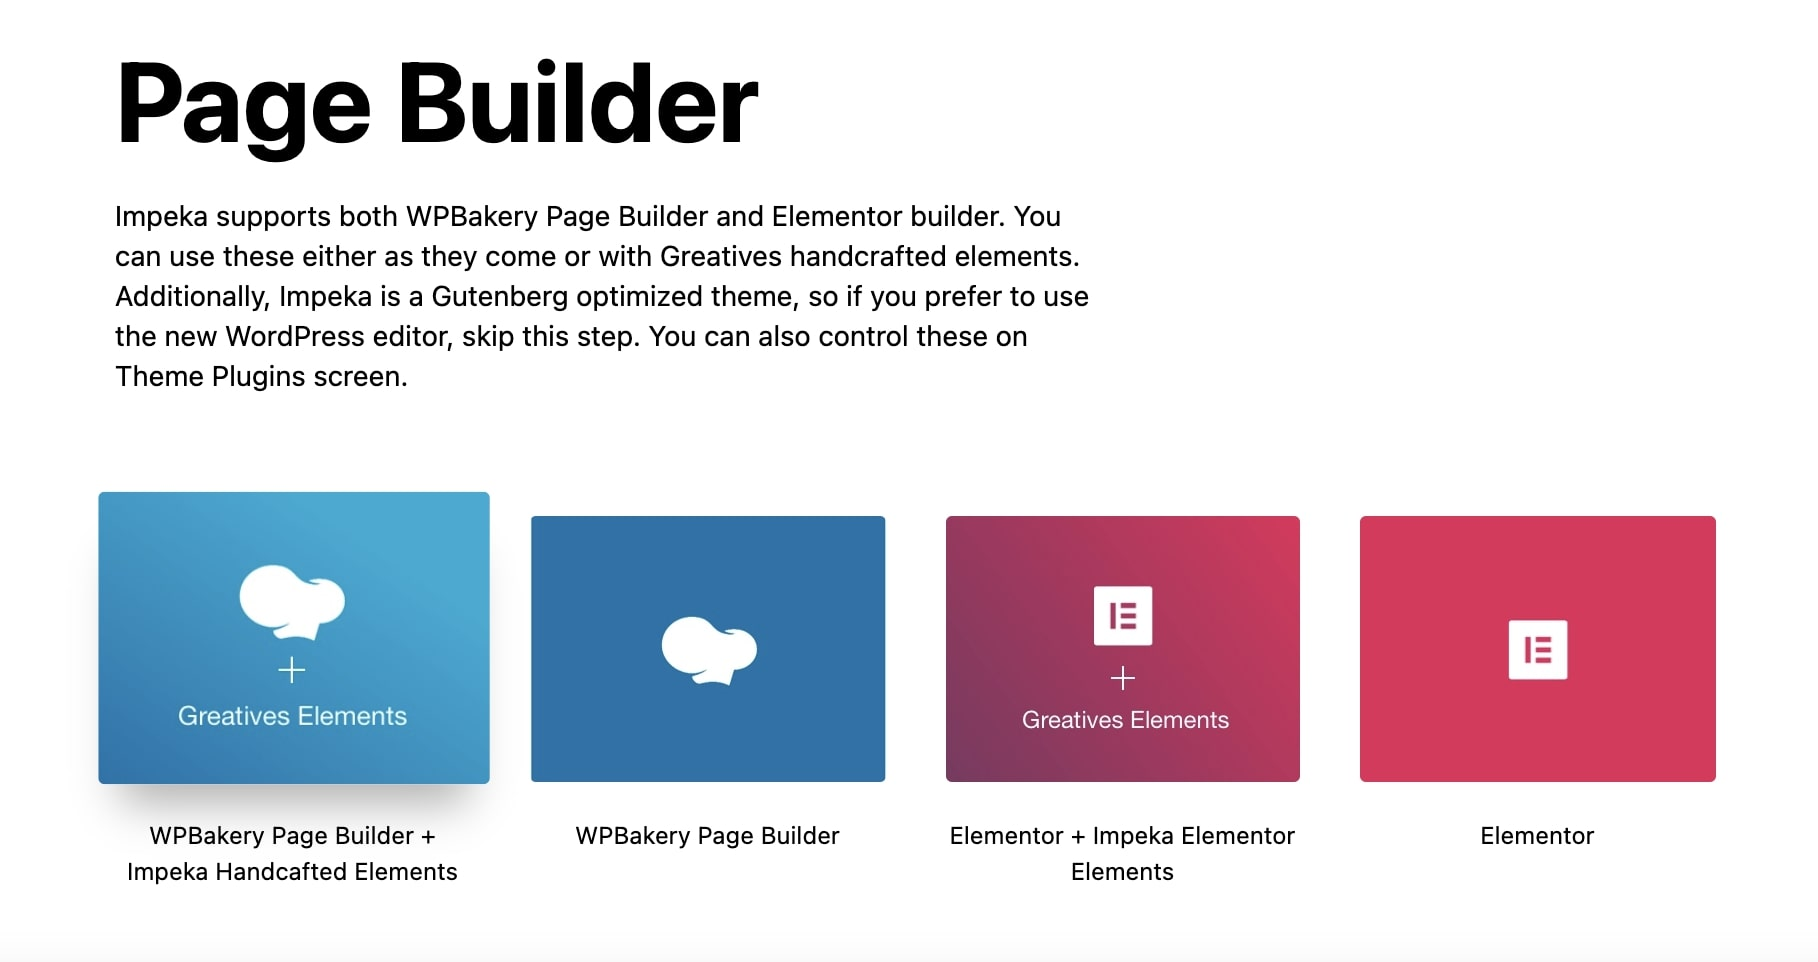 Page Builders in Impeka